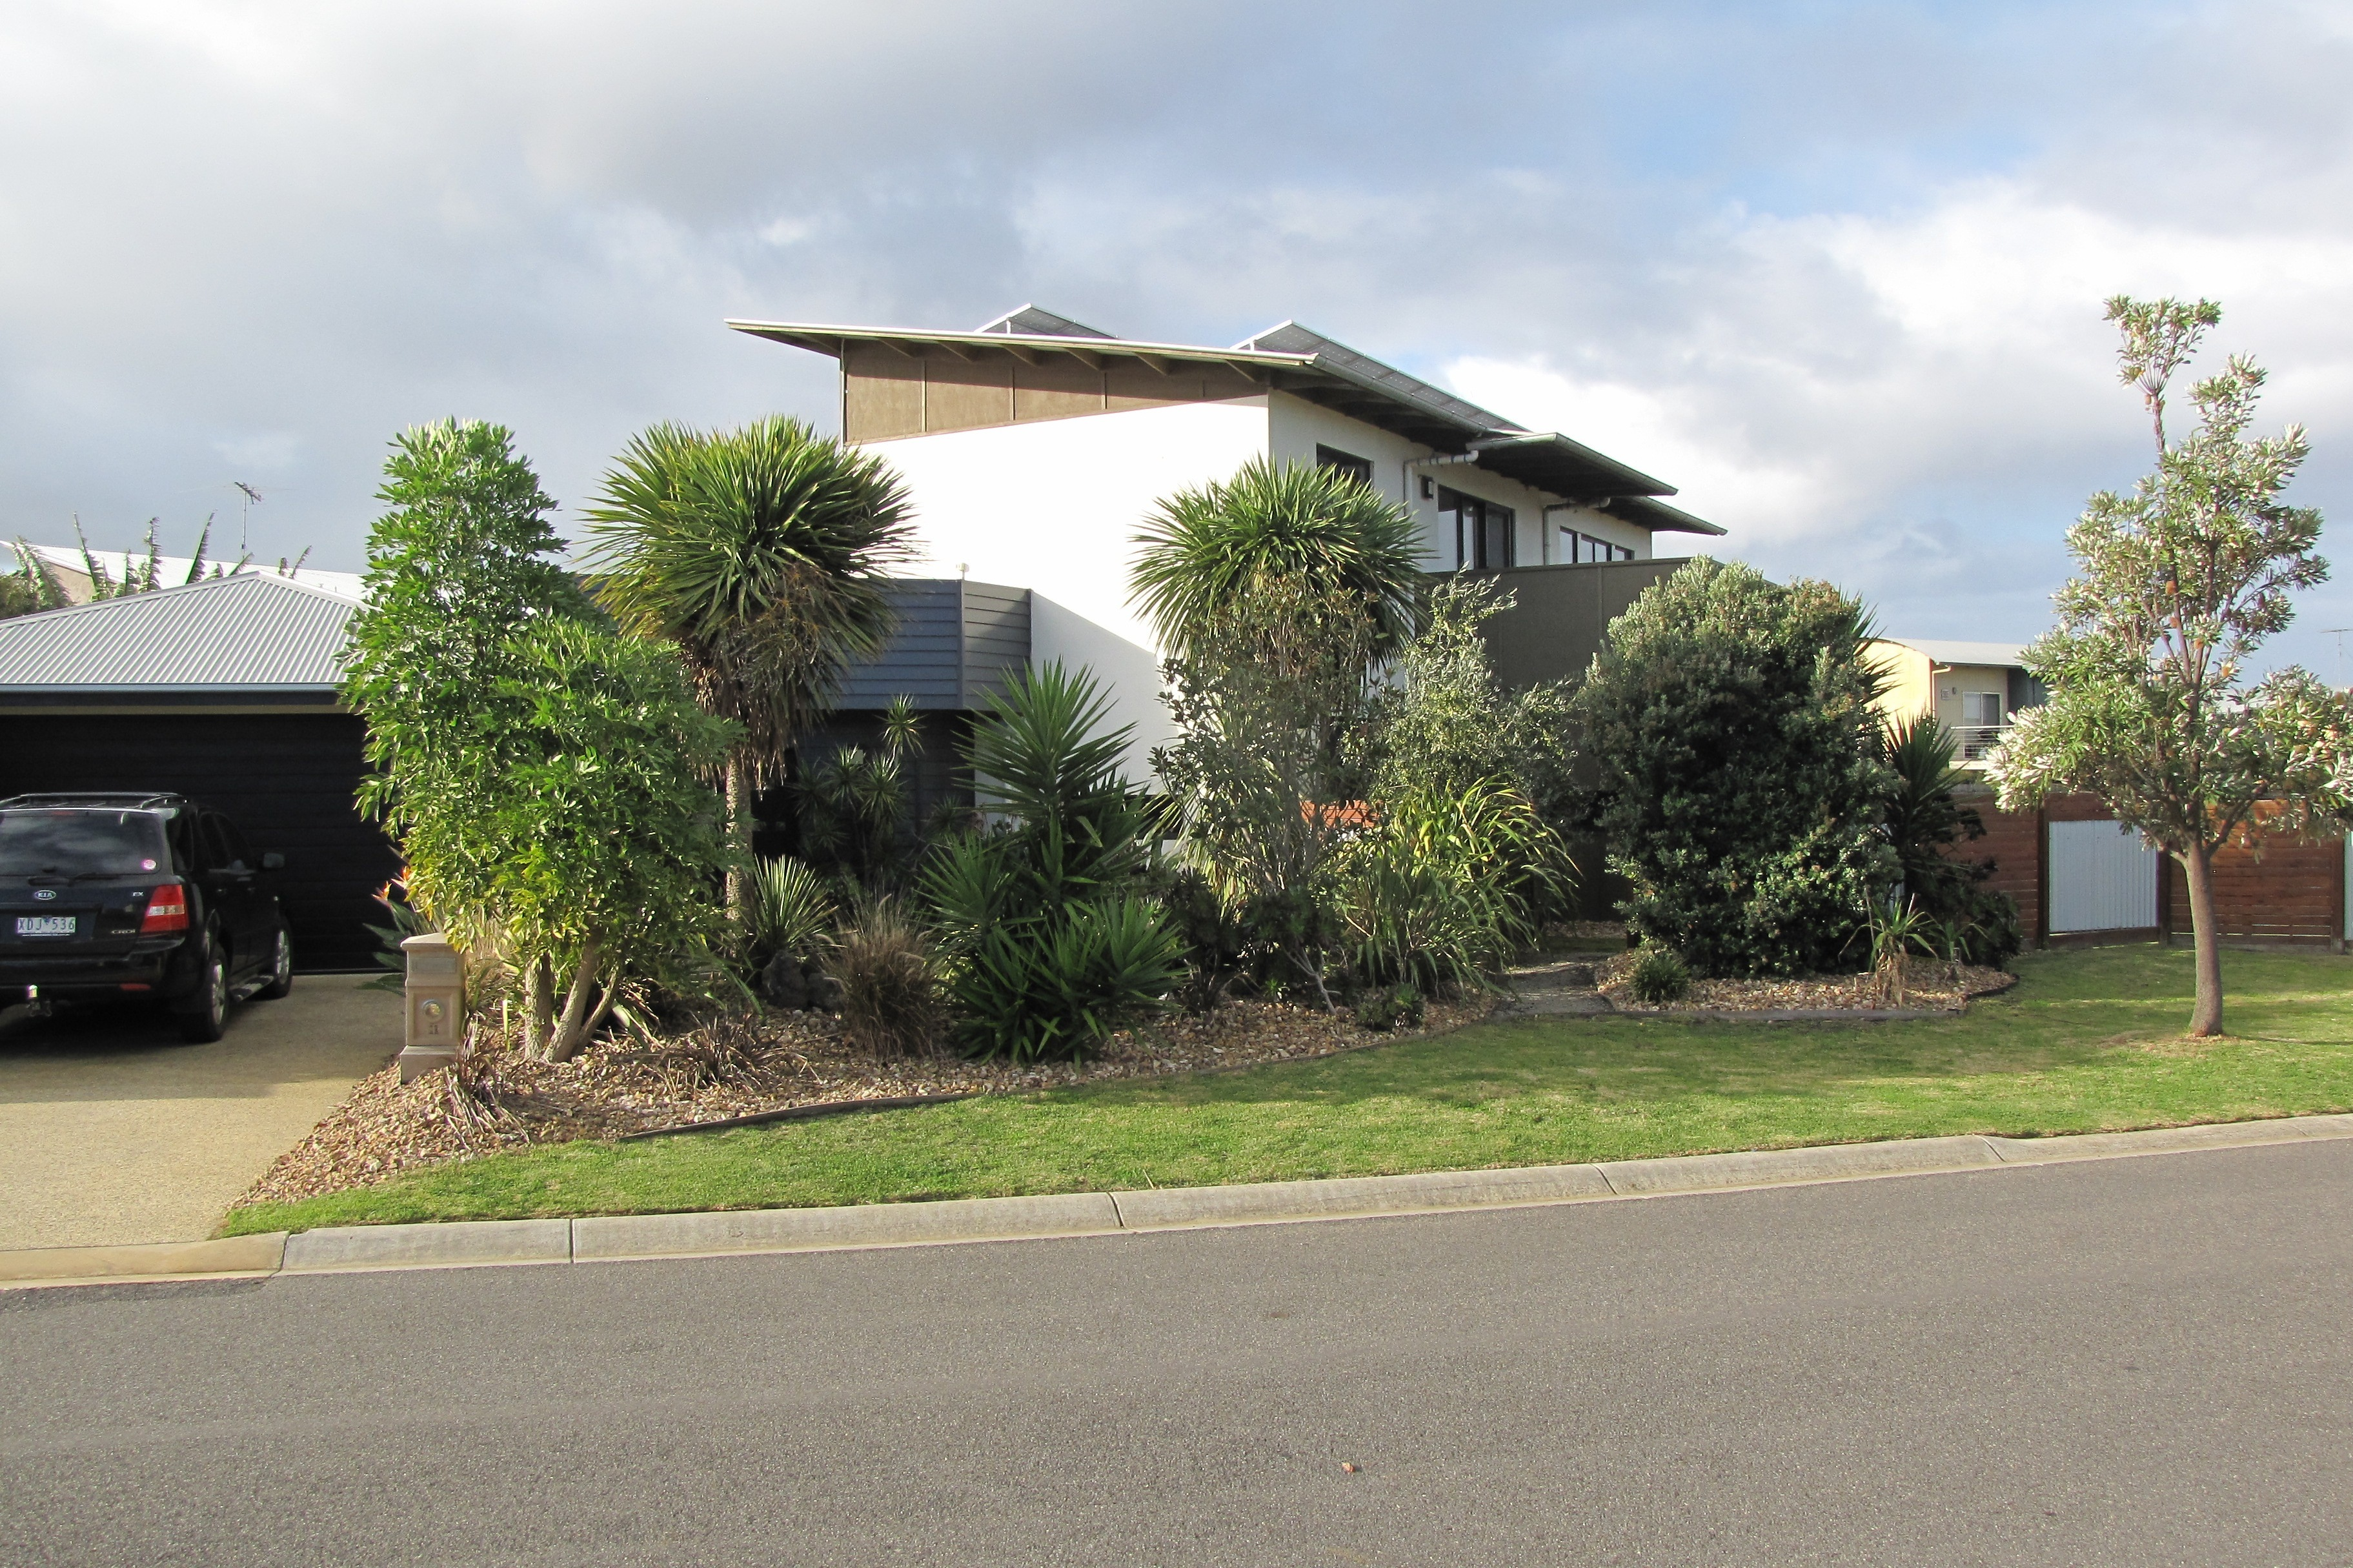 11-13 Bungara Court, Ocean Grove VIC 3226